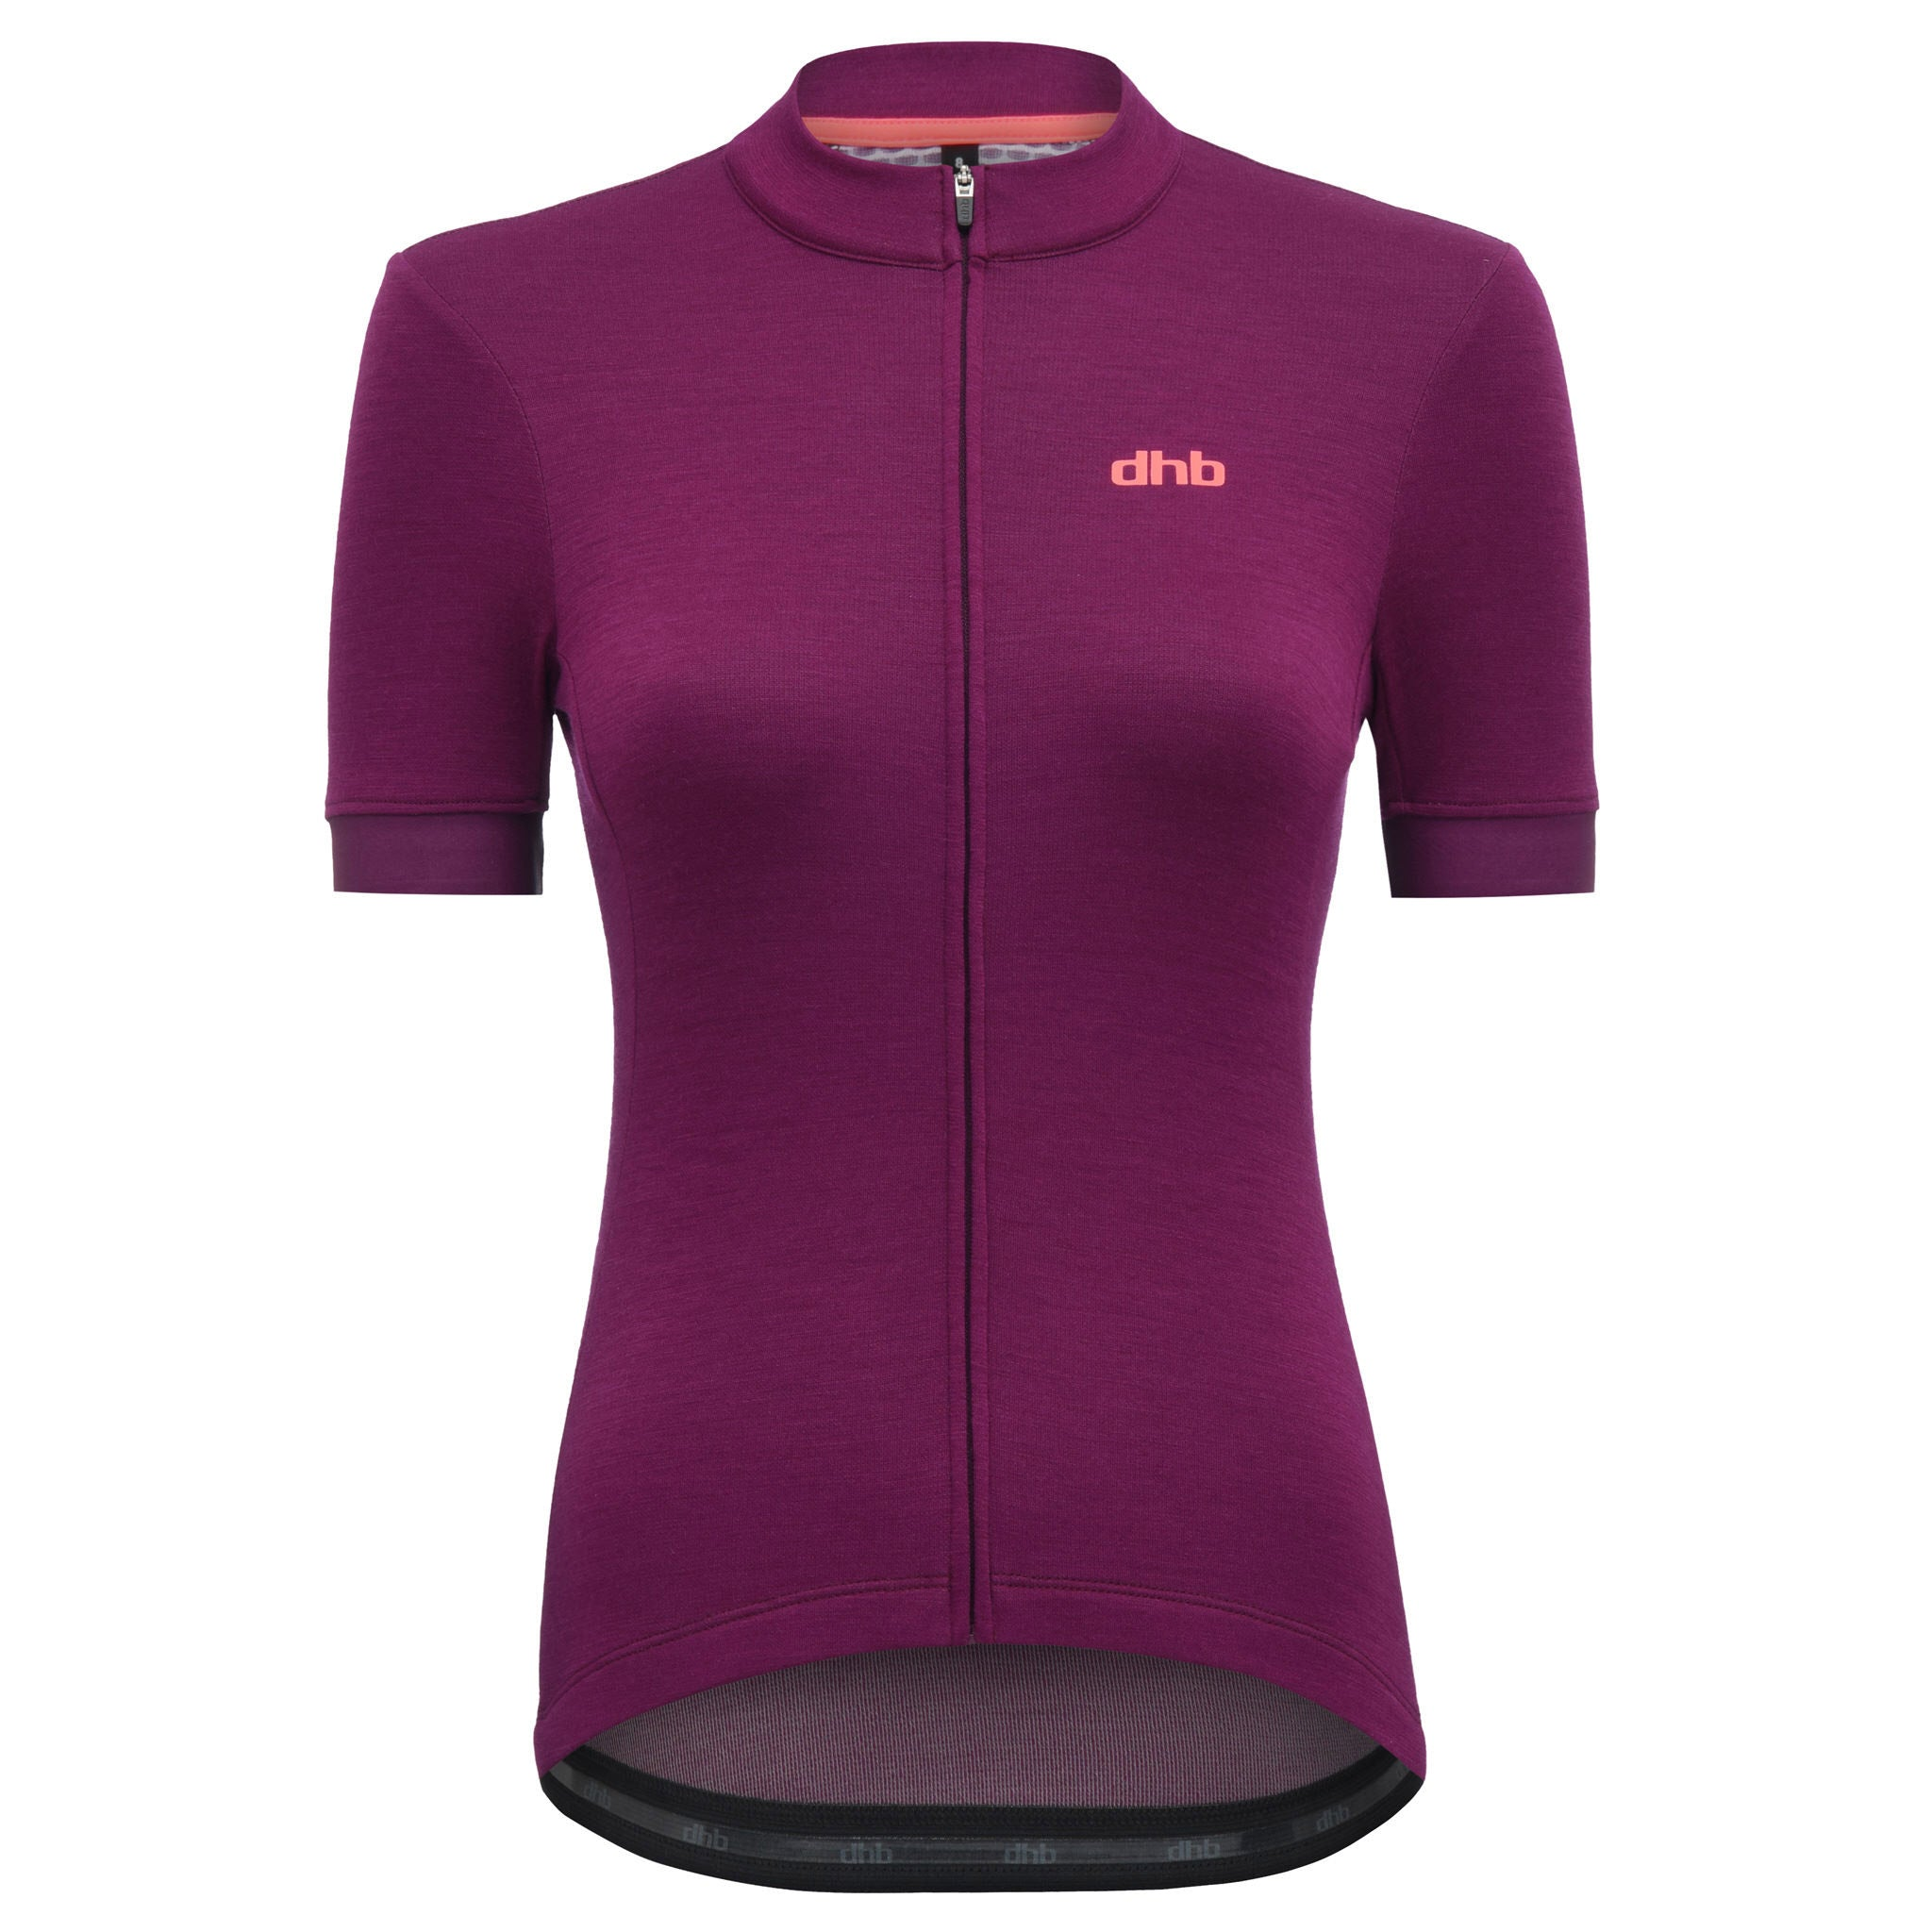 DHB Womens Classic Merino Short Sleeve Jersey Raspberry buy online at Woolys Wheels with free delivery Australia-Wide